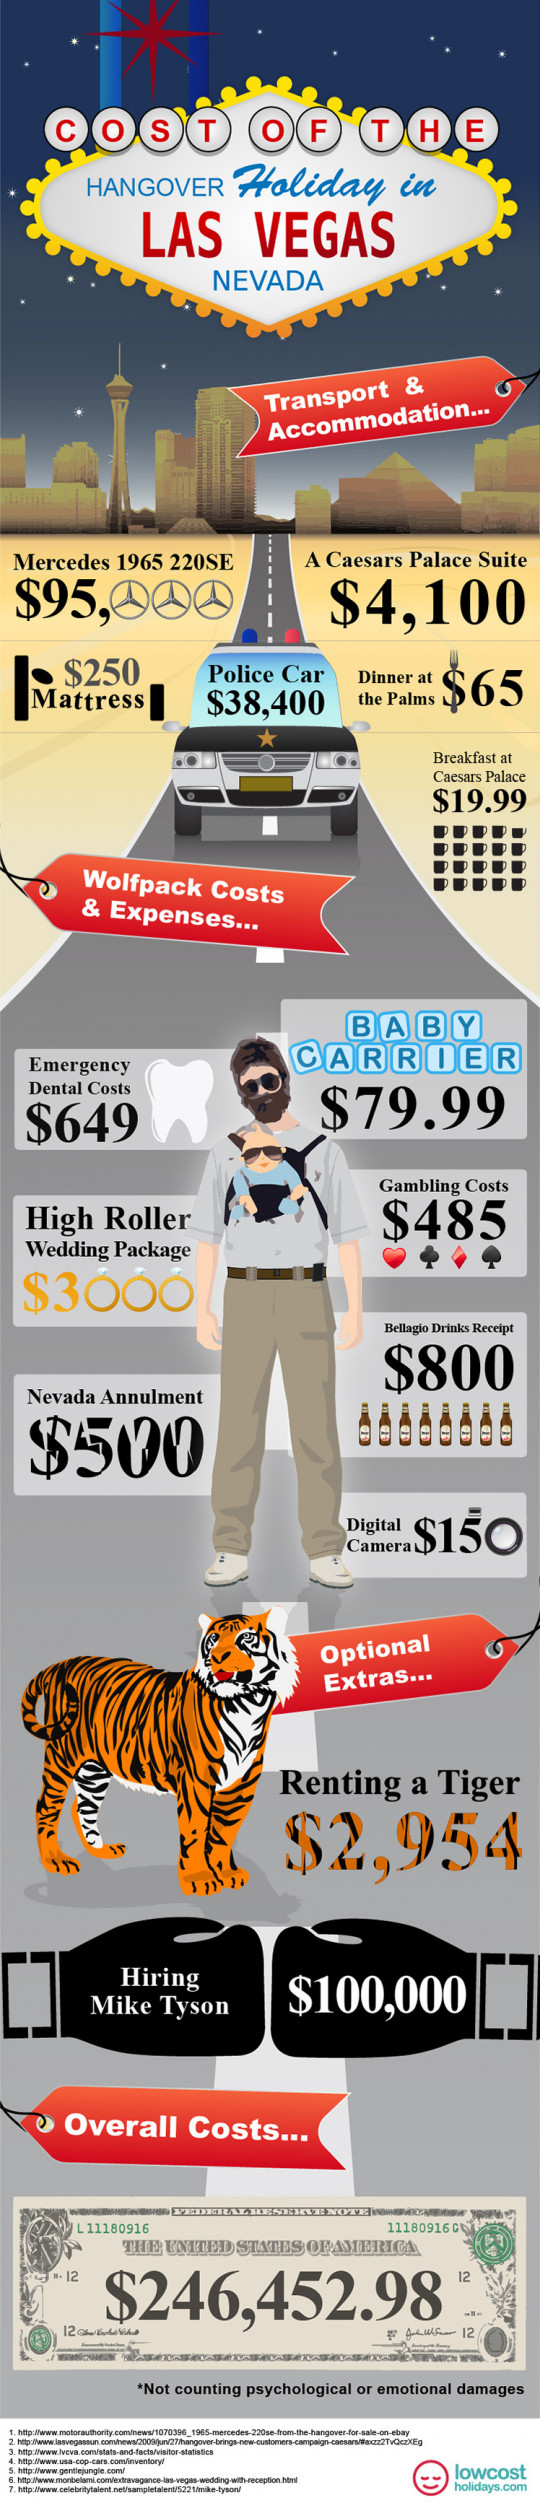 The Cost of the Hangover Holiday in Vegas